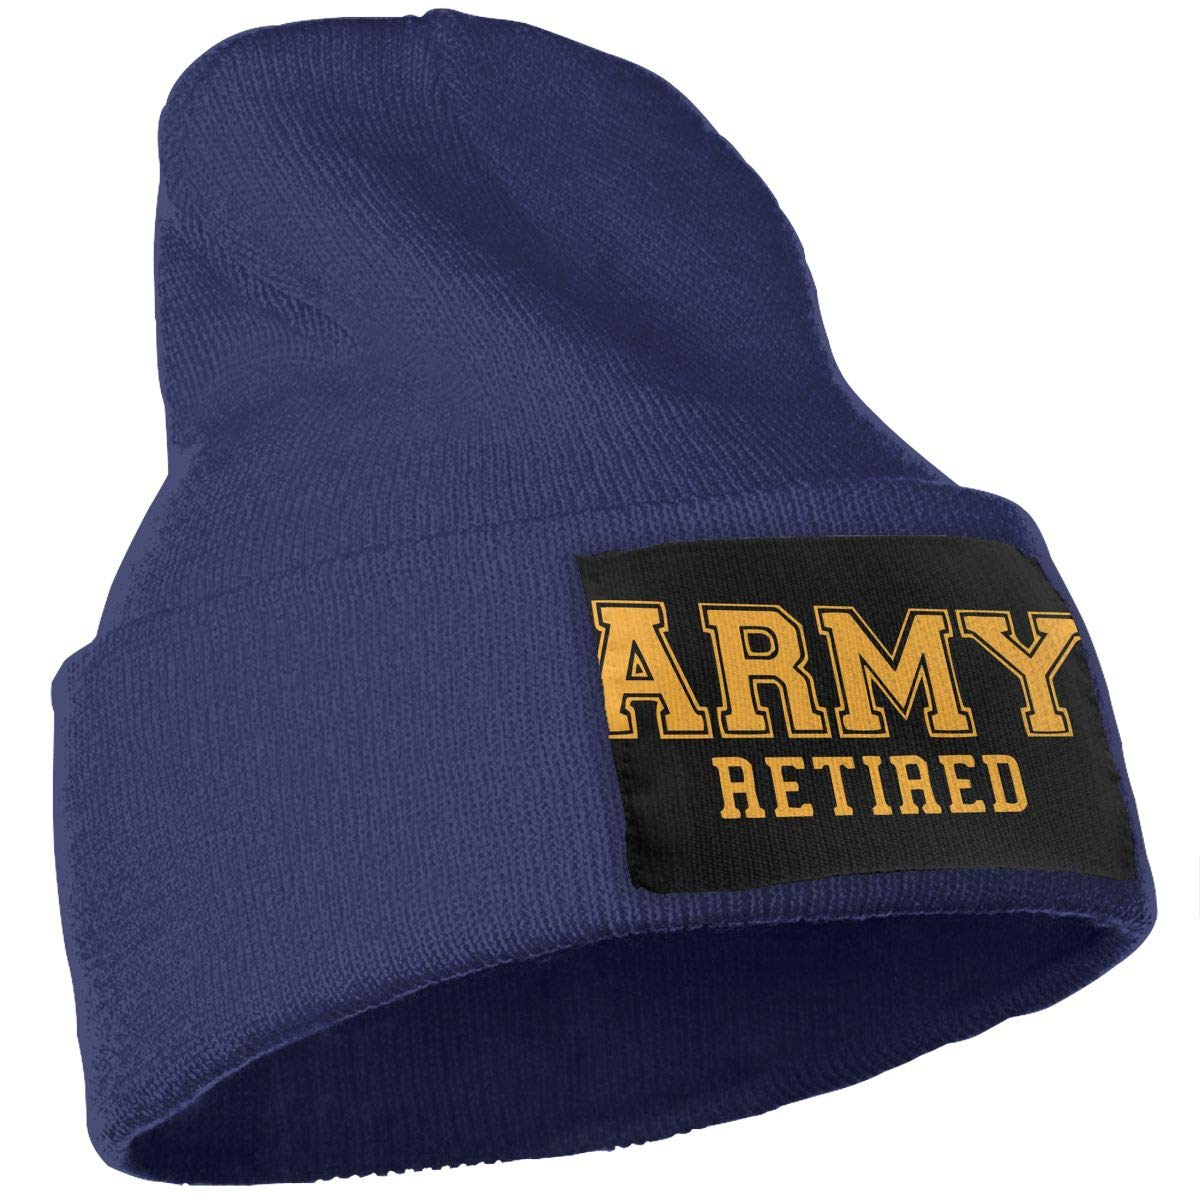 Army Retired Thick Skull Cap WHOO93@Y Unisex 100/% Acrylic Knit Hat Cap